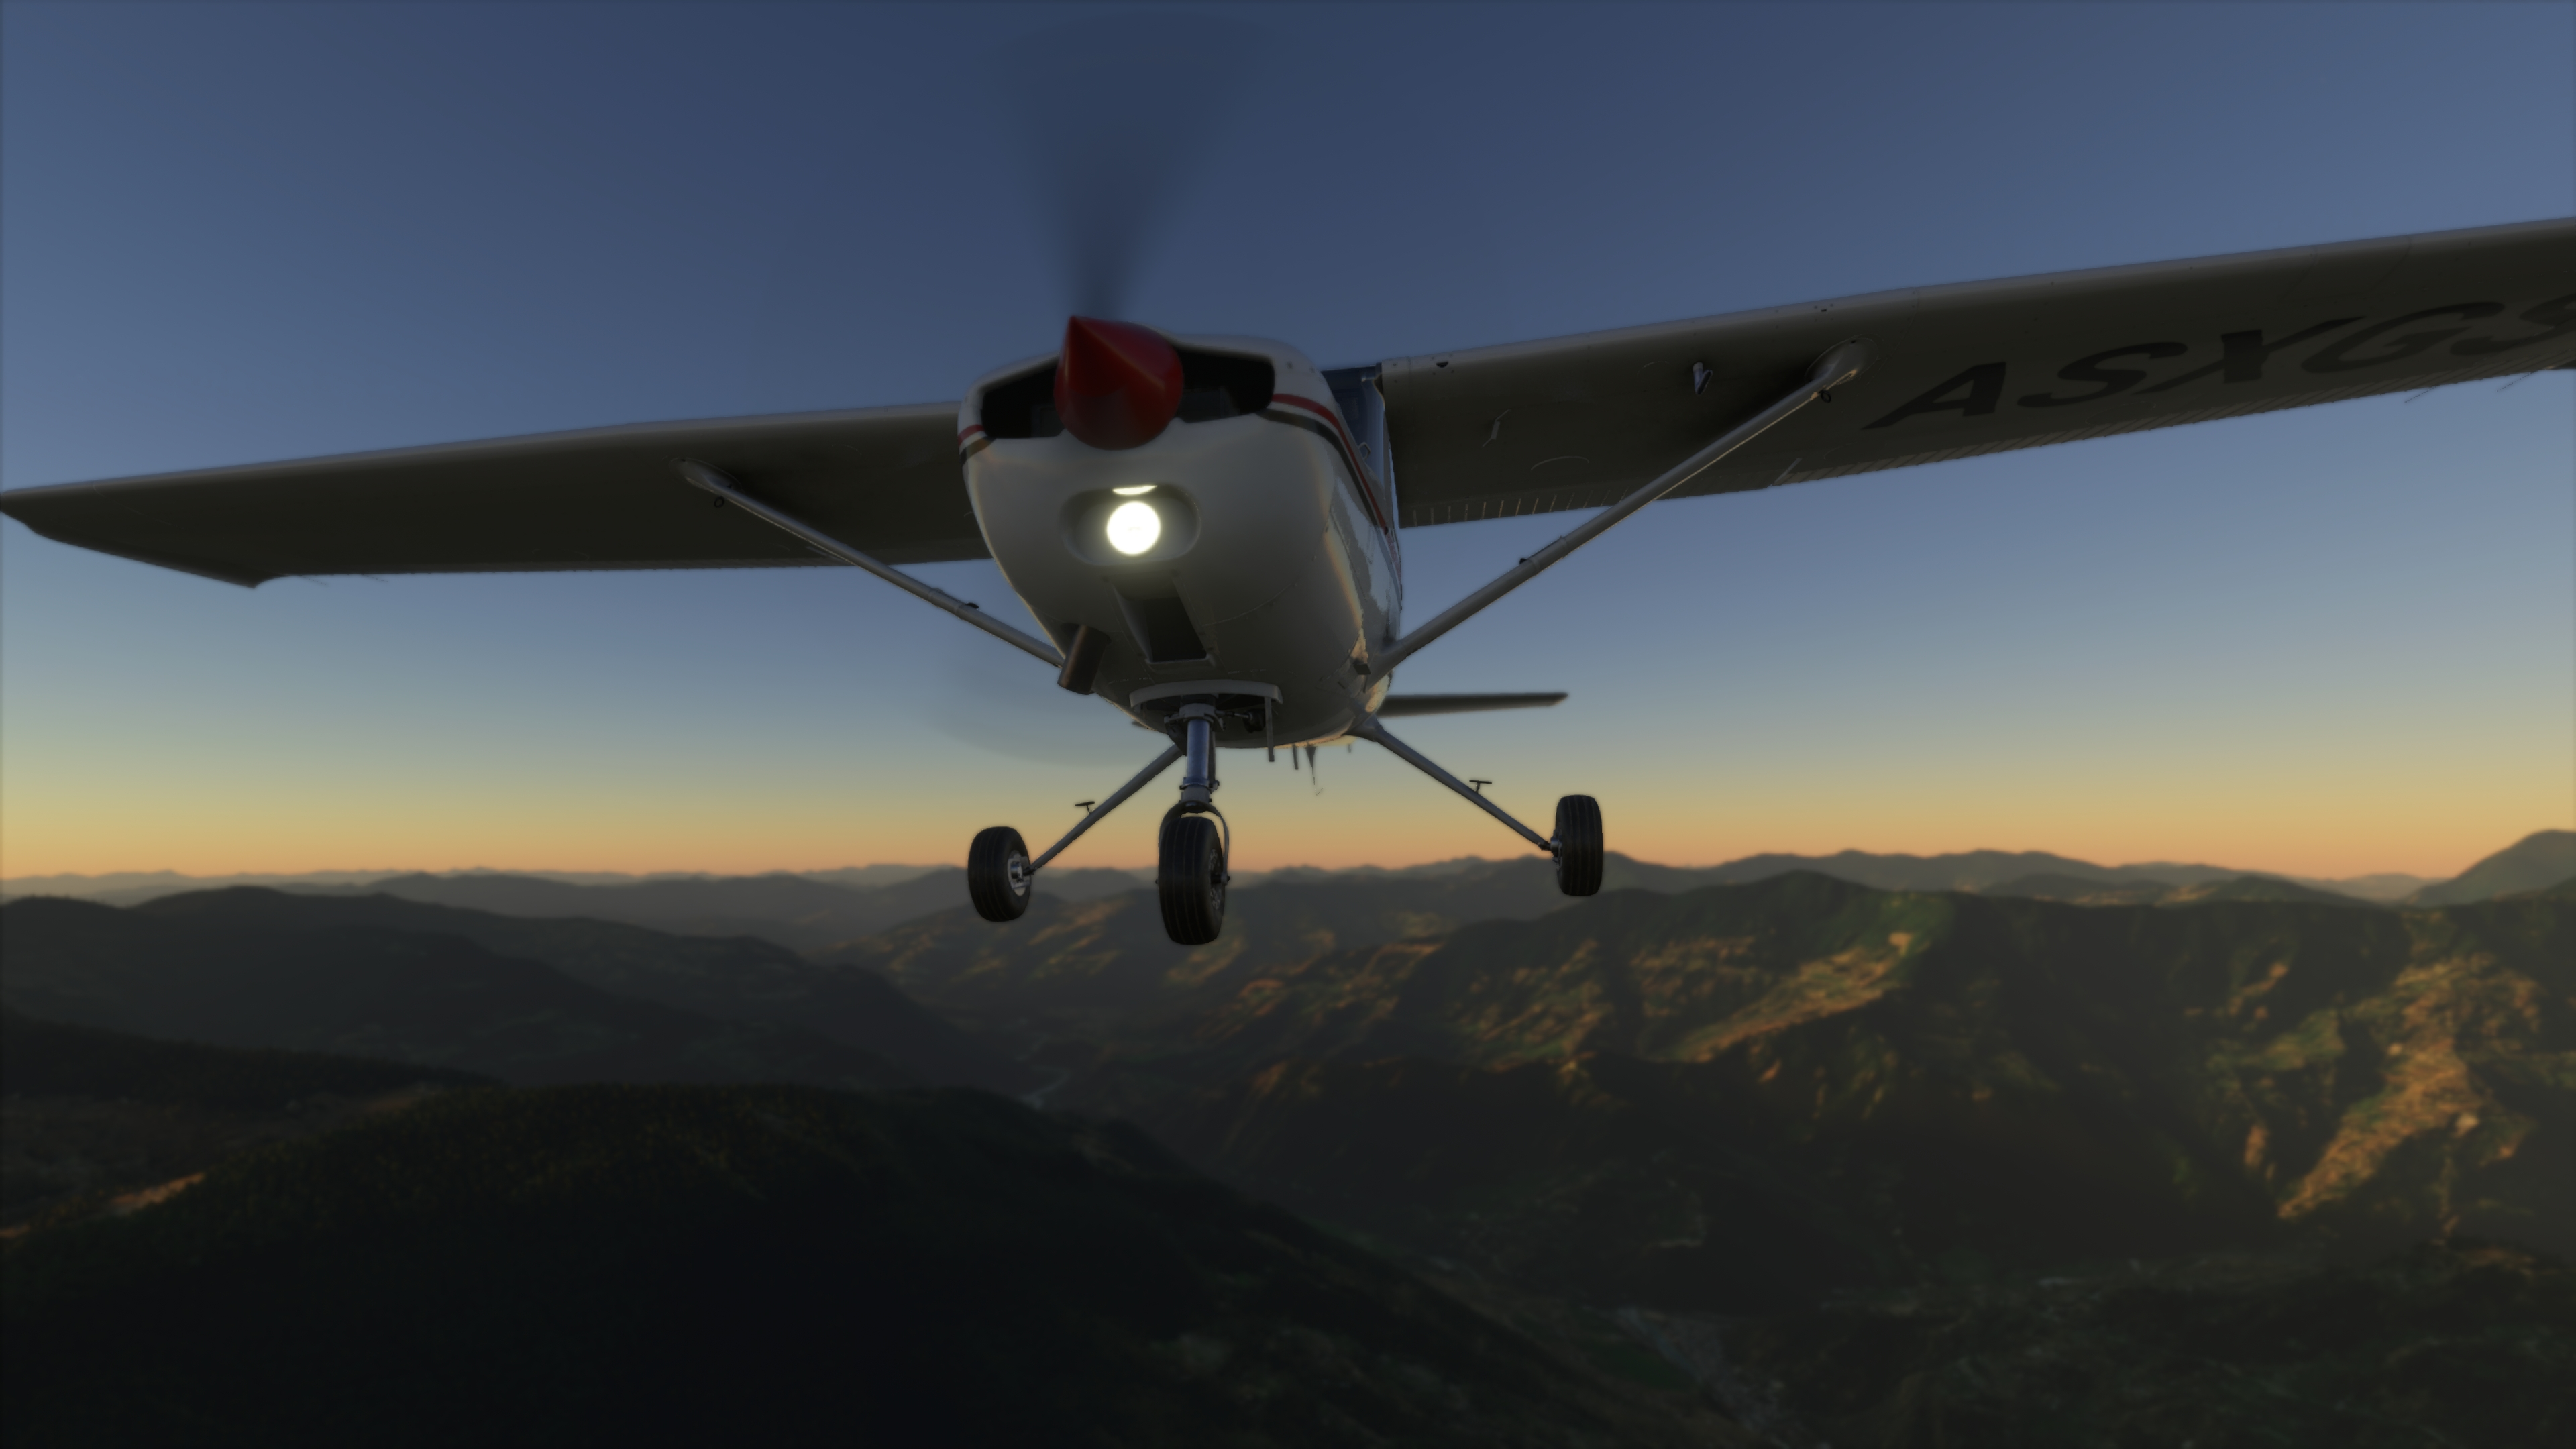 FlightSimulator_2020_08_20_18_35_59_360.jpg